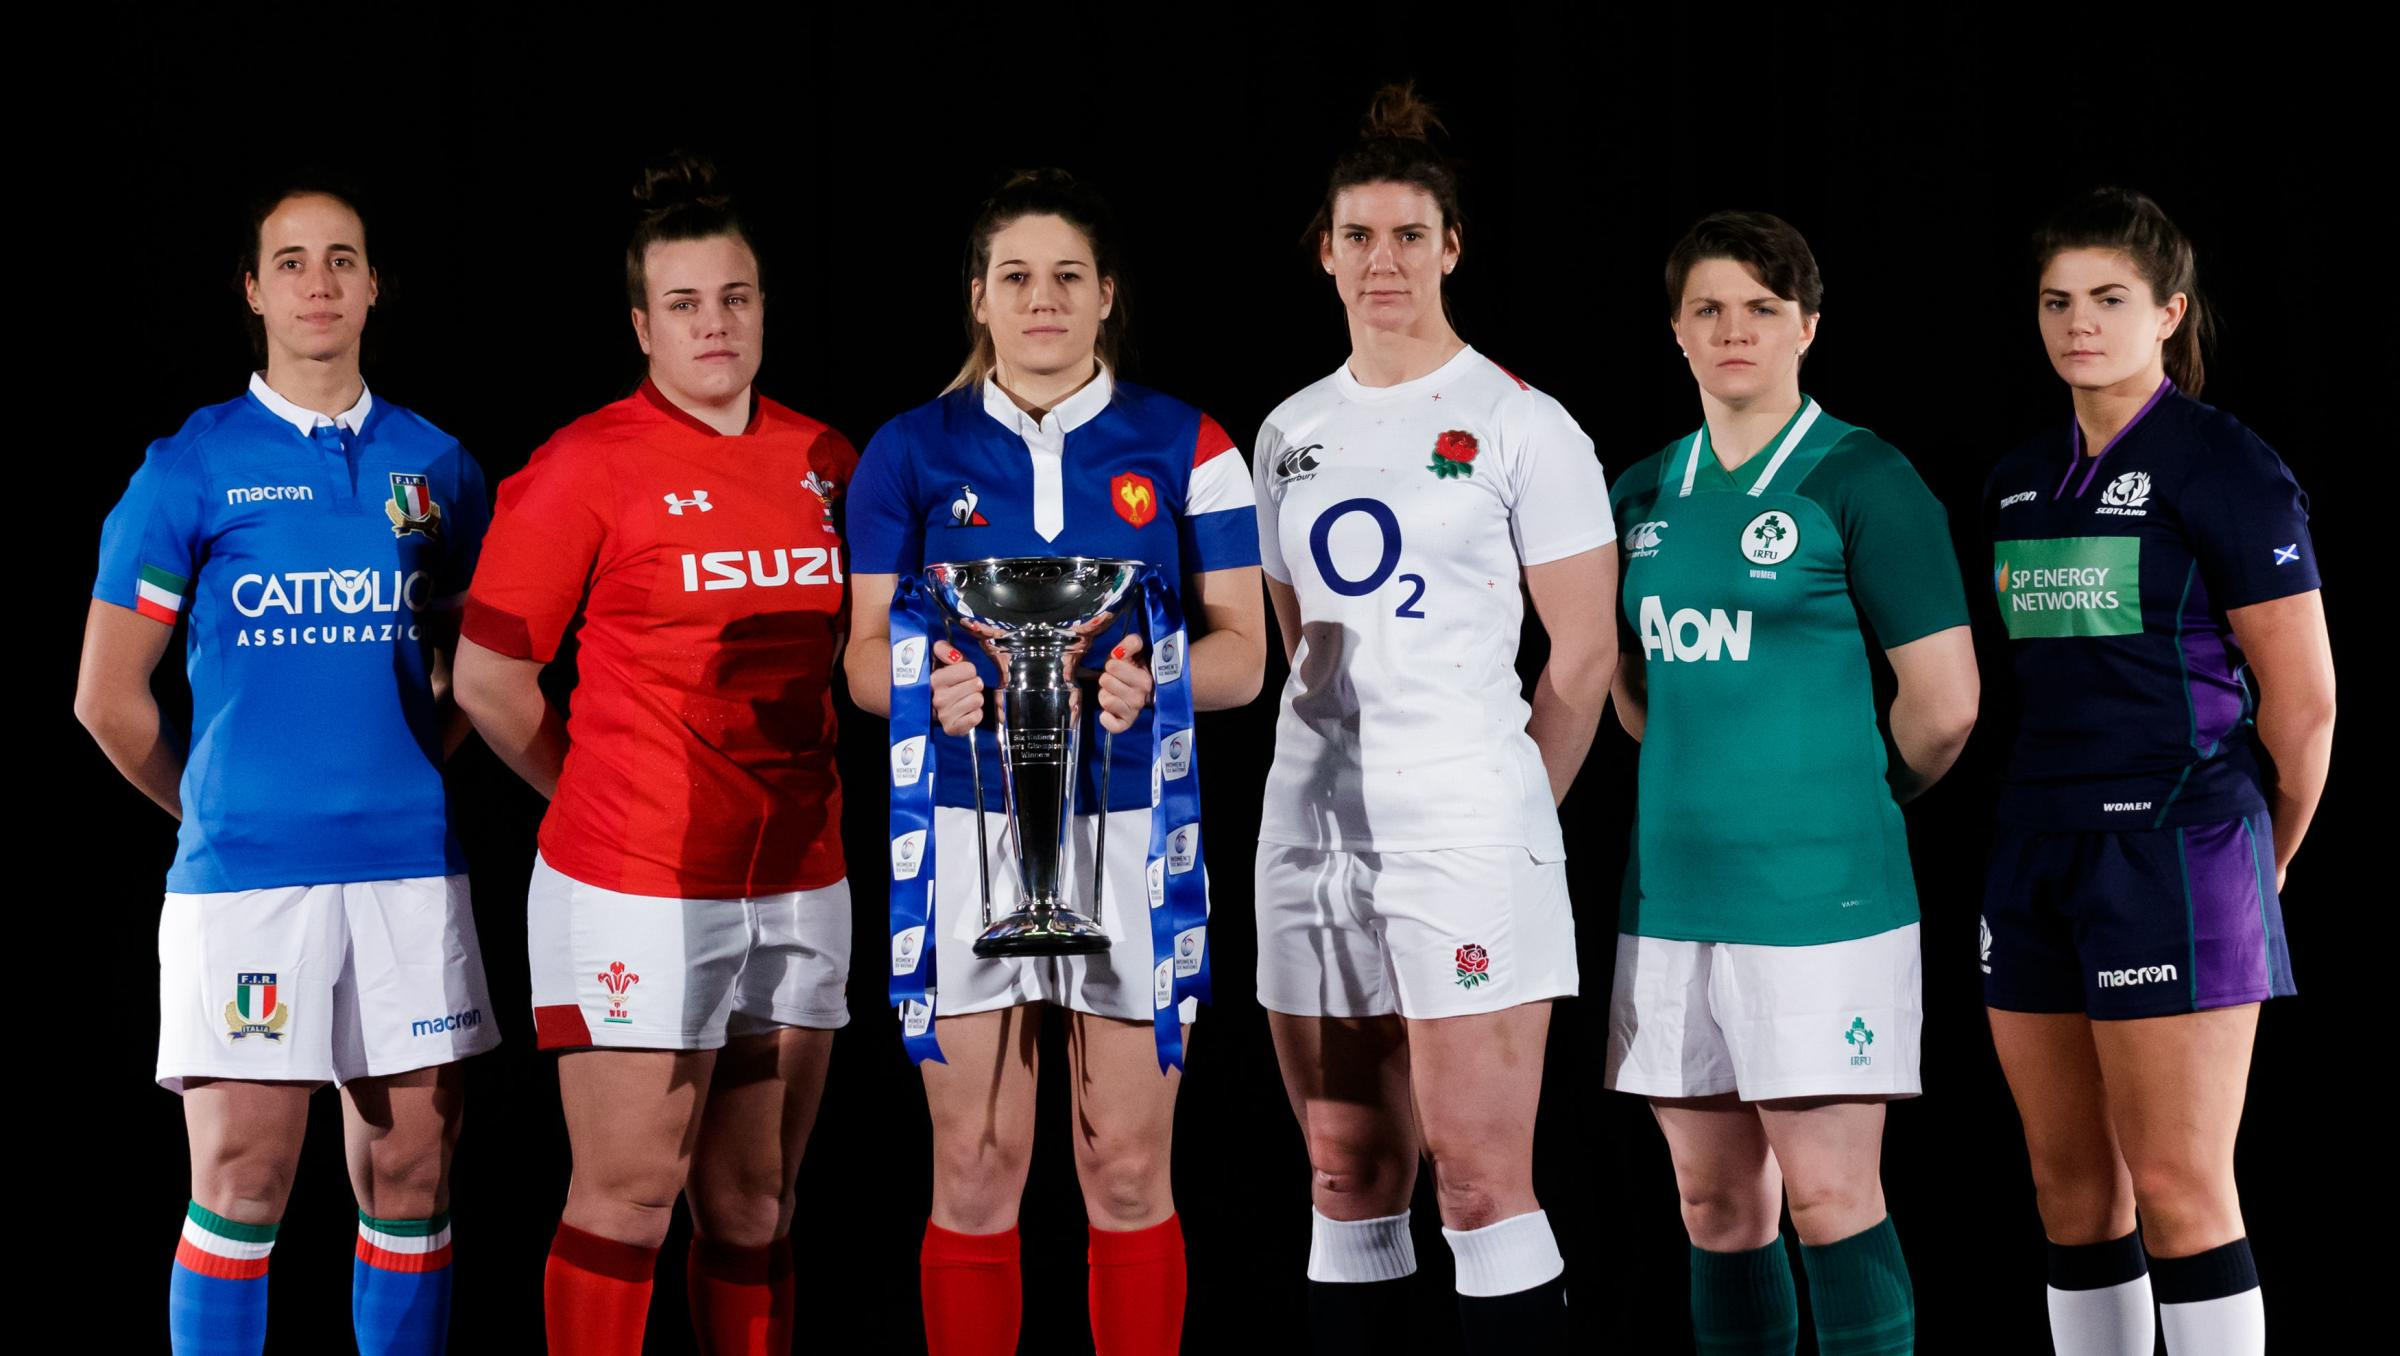 (left to right) Italy's captain Manuela Furlan, Wales' captain Carys Phillips, France's captain Gaelle Hermet, England's captain Sarah Hunter, Ireland's captain Ciara Griffin, Scotland's captain Lisa Thomson during the Guinness Six